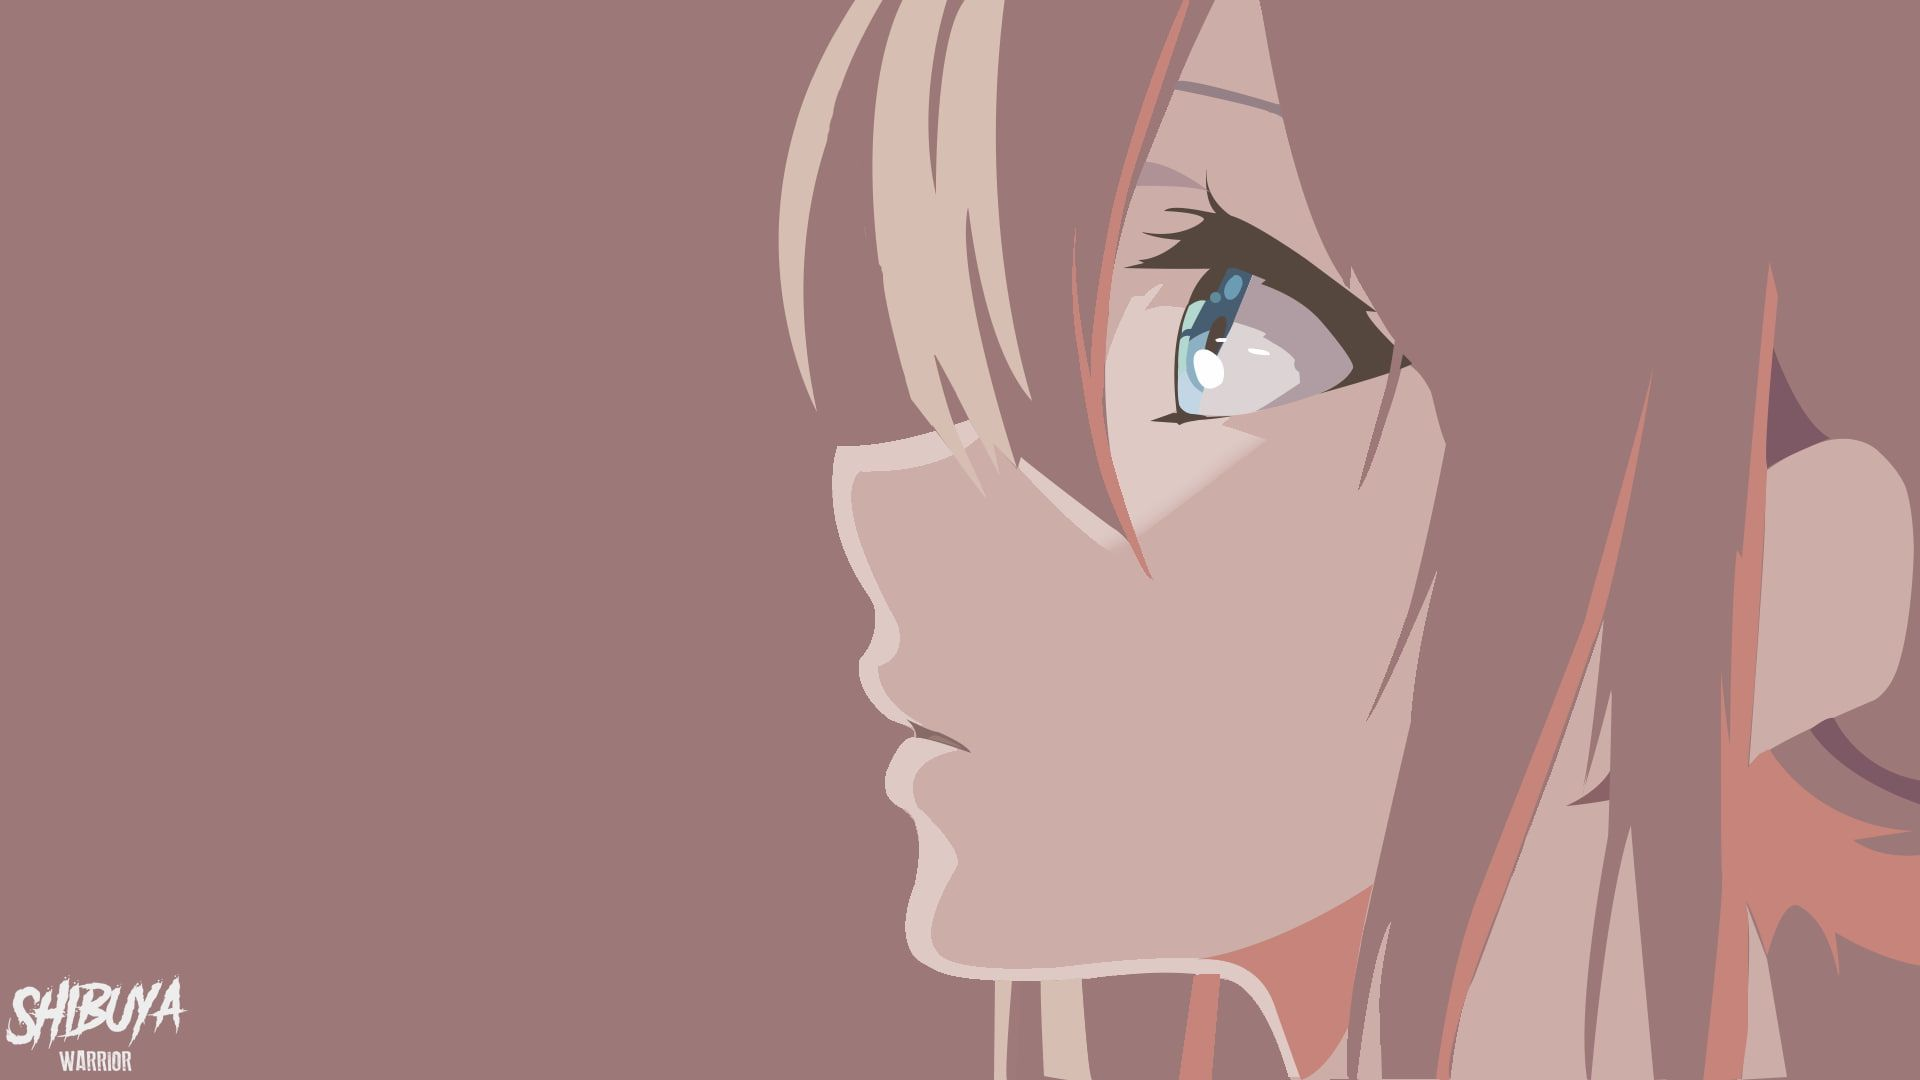 Violet Evergarden Anime Girls Blue Eyes Anime Face Profile Simple Background 1080p Wallpaper Hdwallpape In 2020 Anime Wallpaper Violet Evergarden Wallpaper Anime